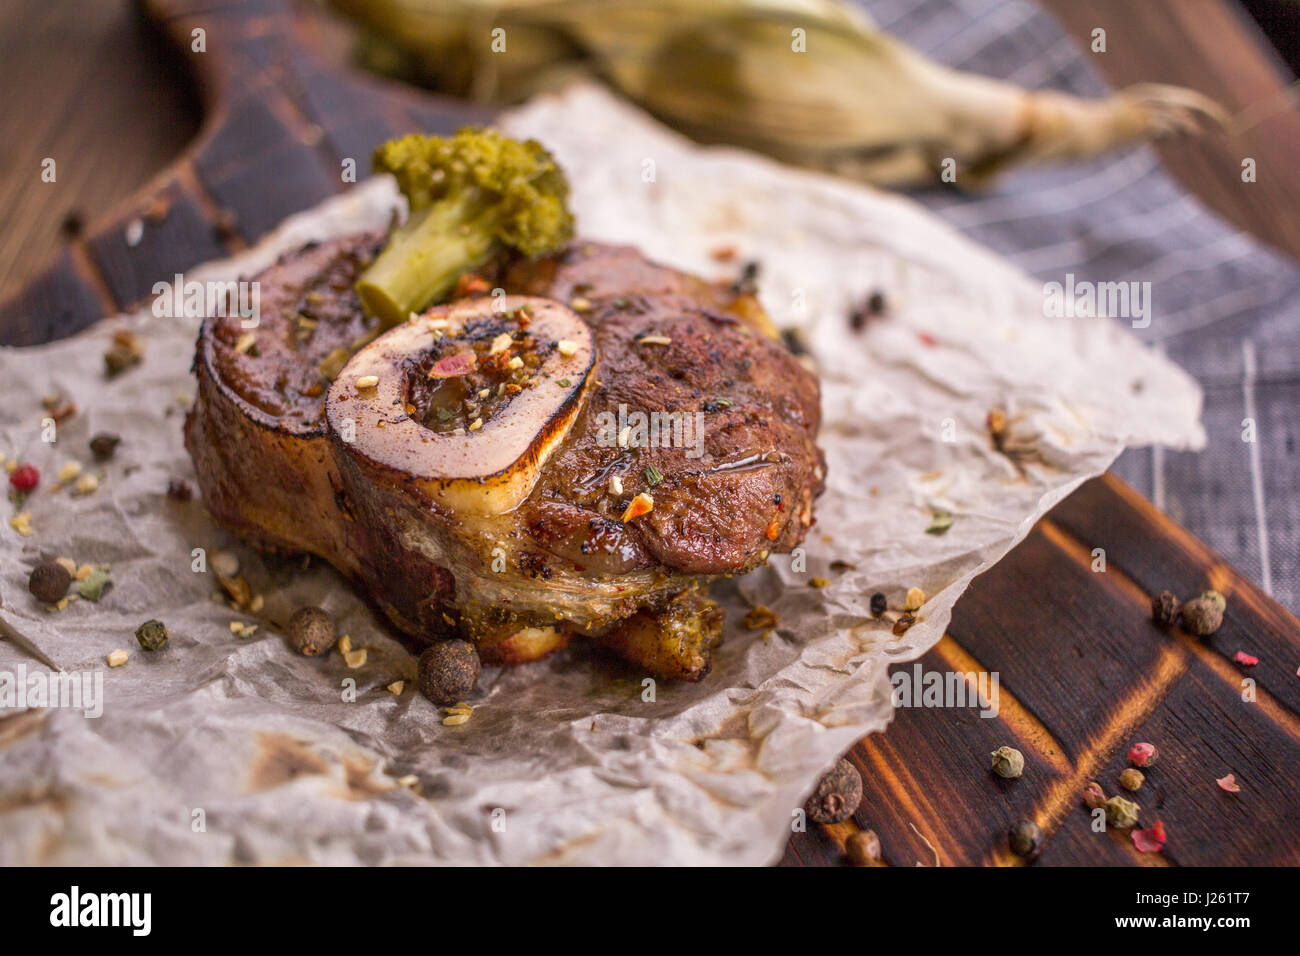 Baked lamb knee and close-up on a wooden board - Stock Image